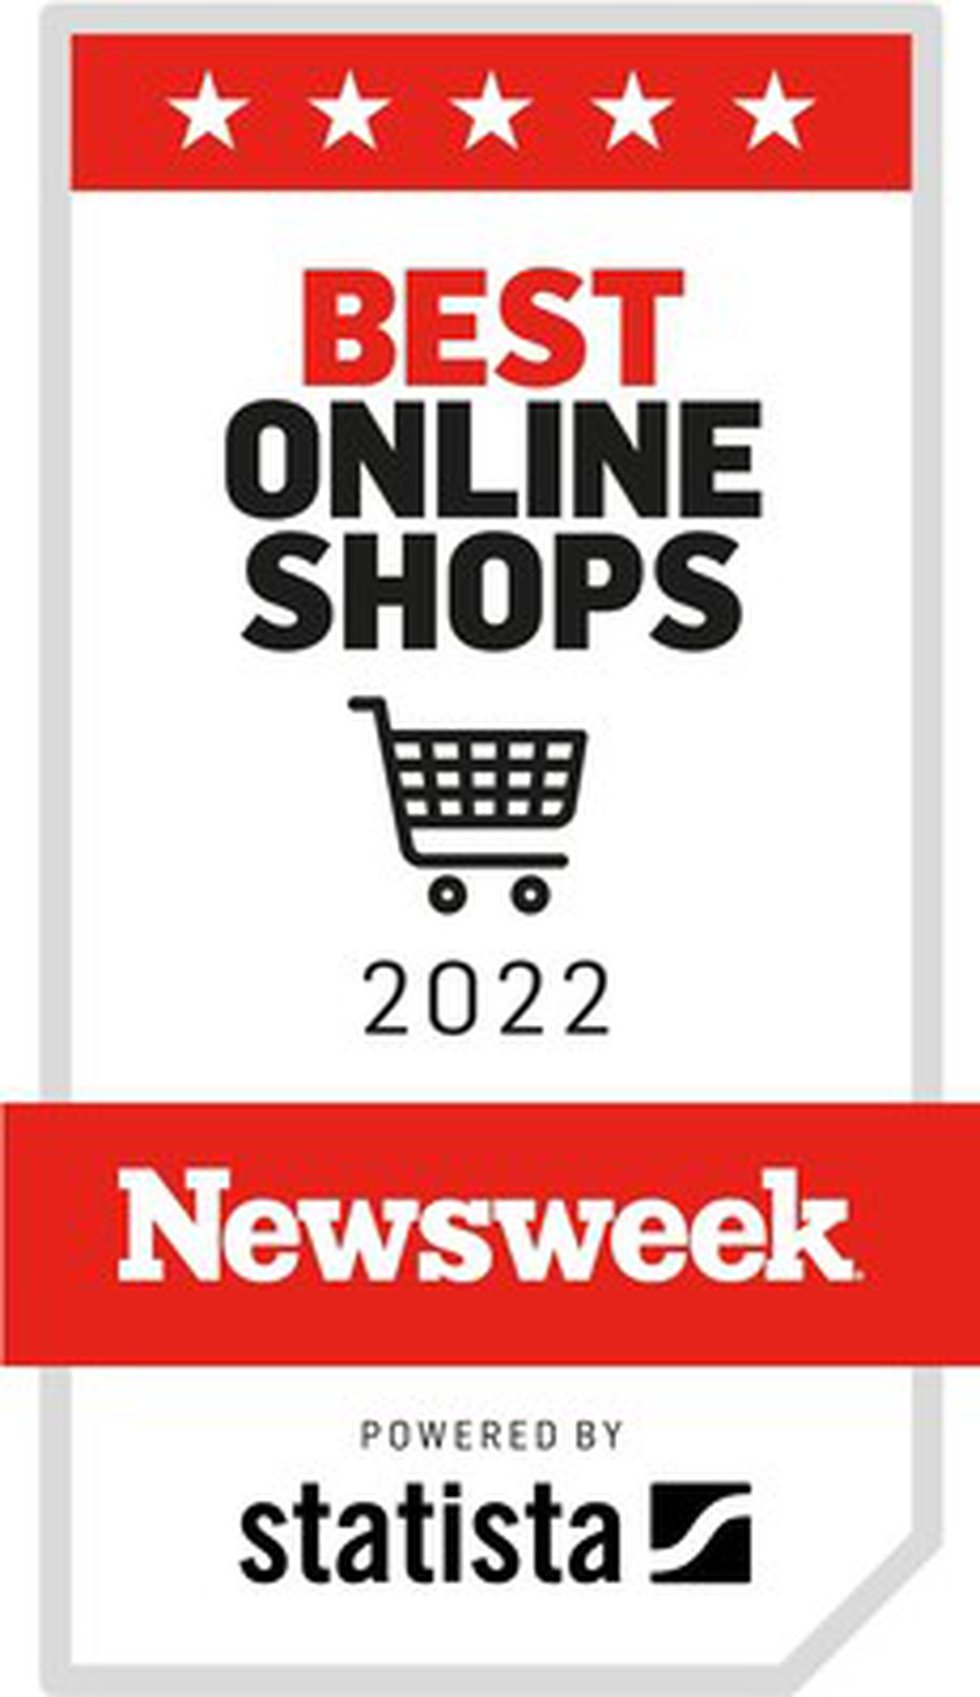 Newsweek Recognizes B&H Photo as One of America's Best Online Shops for 2022